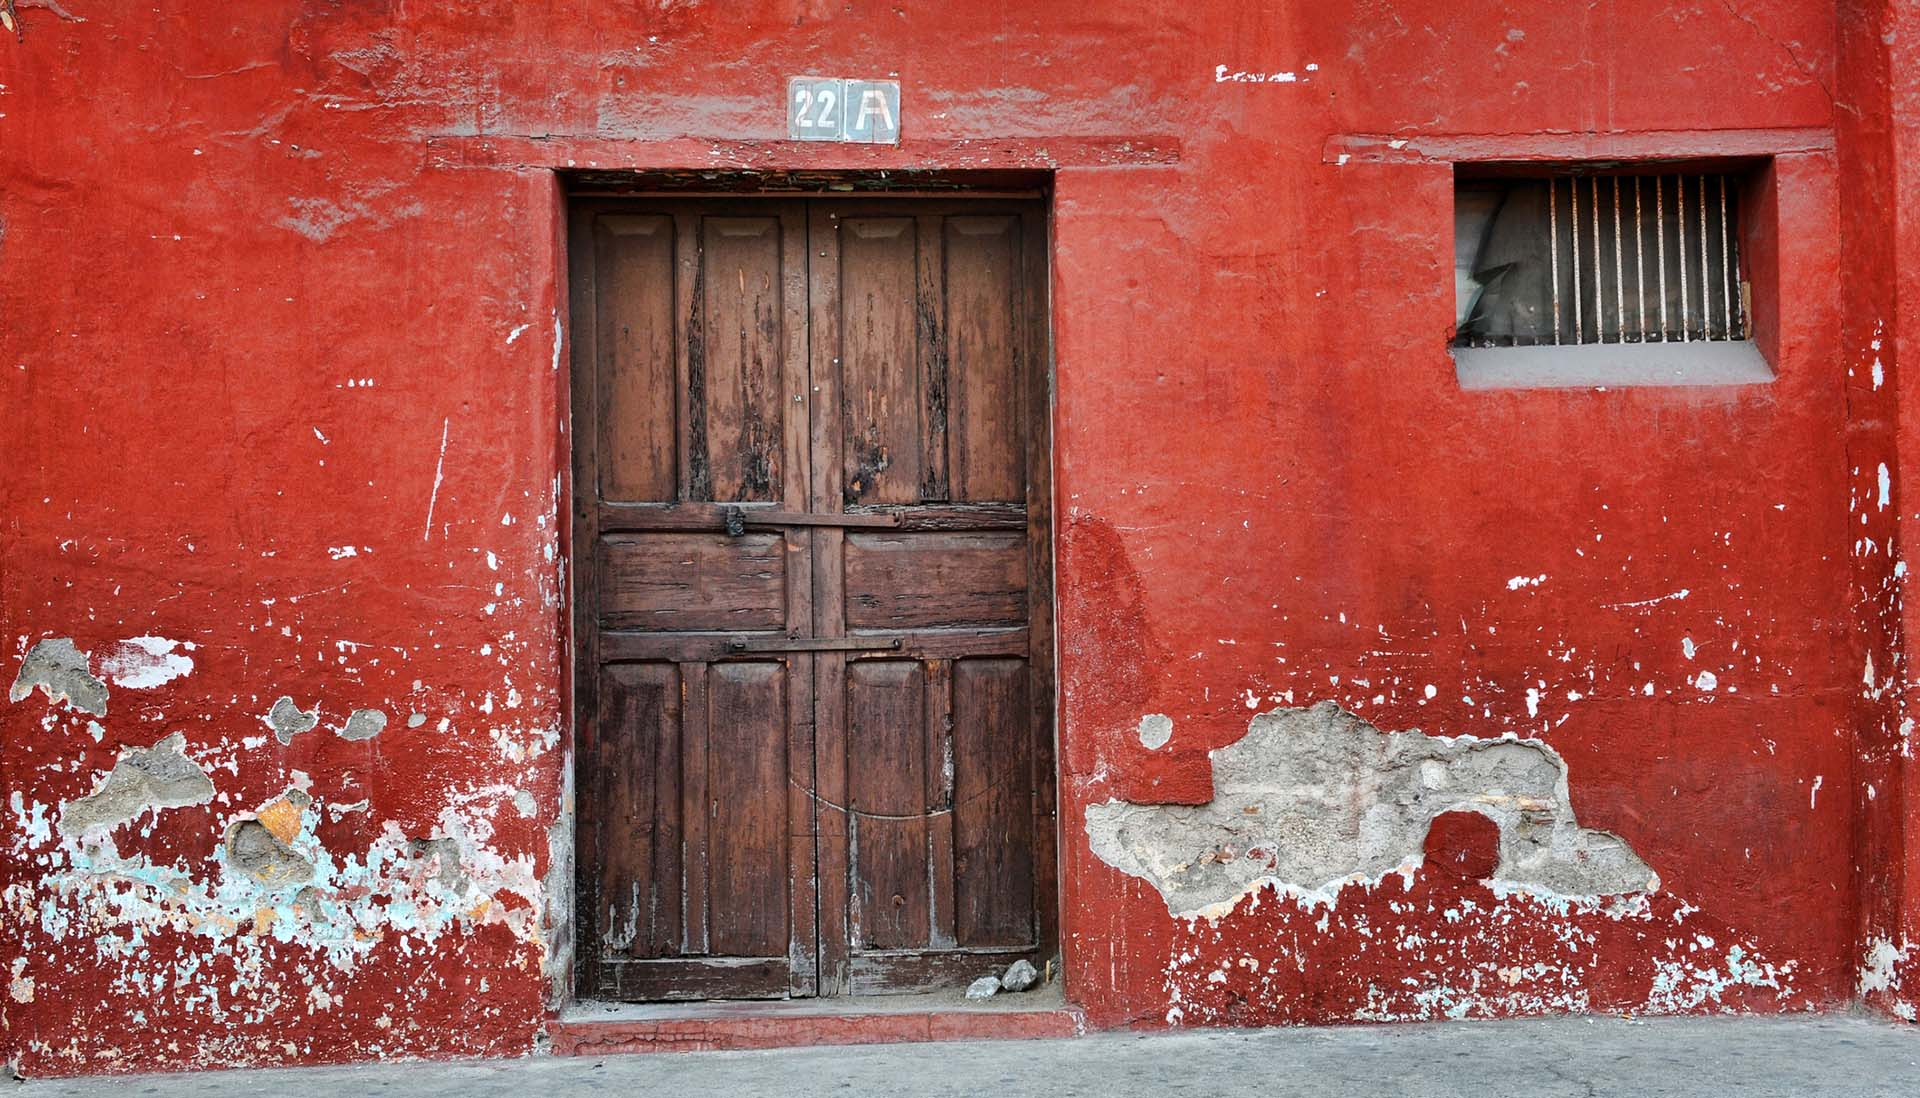 red-wall-image